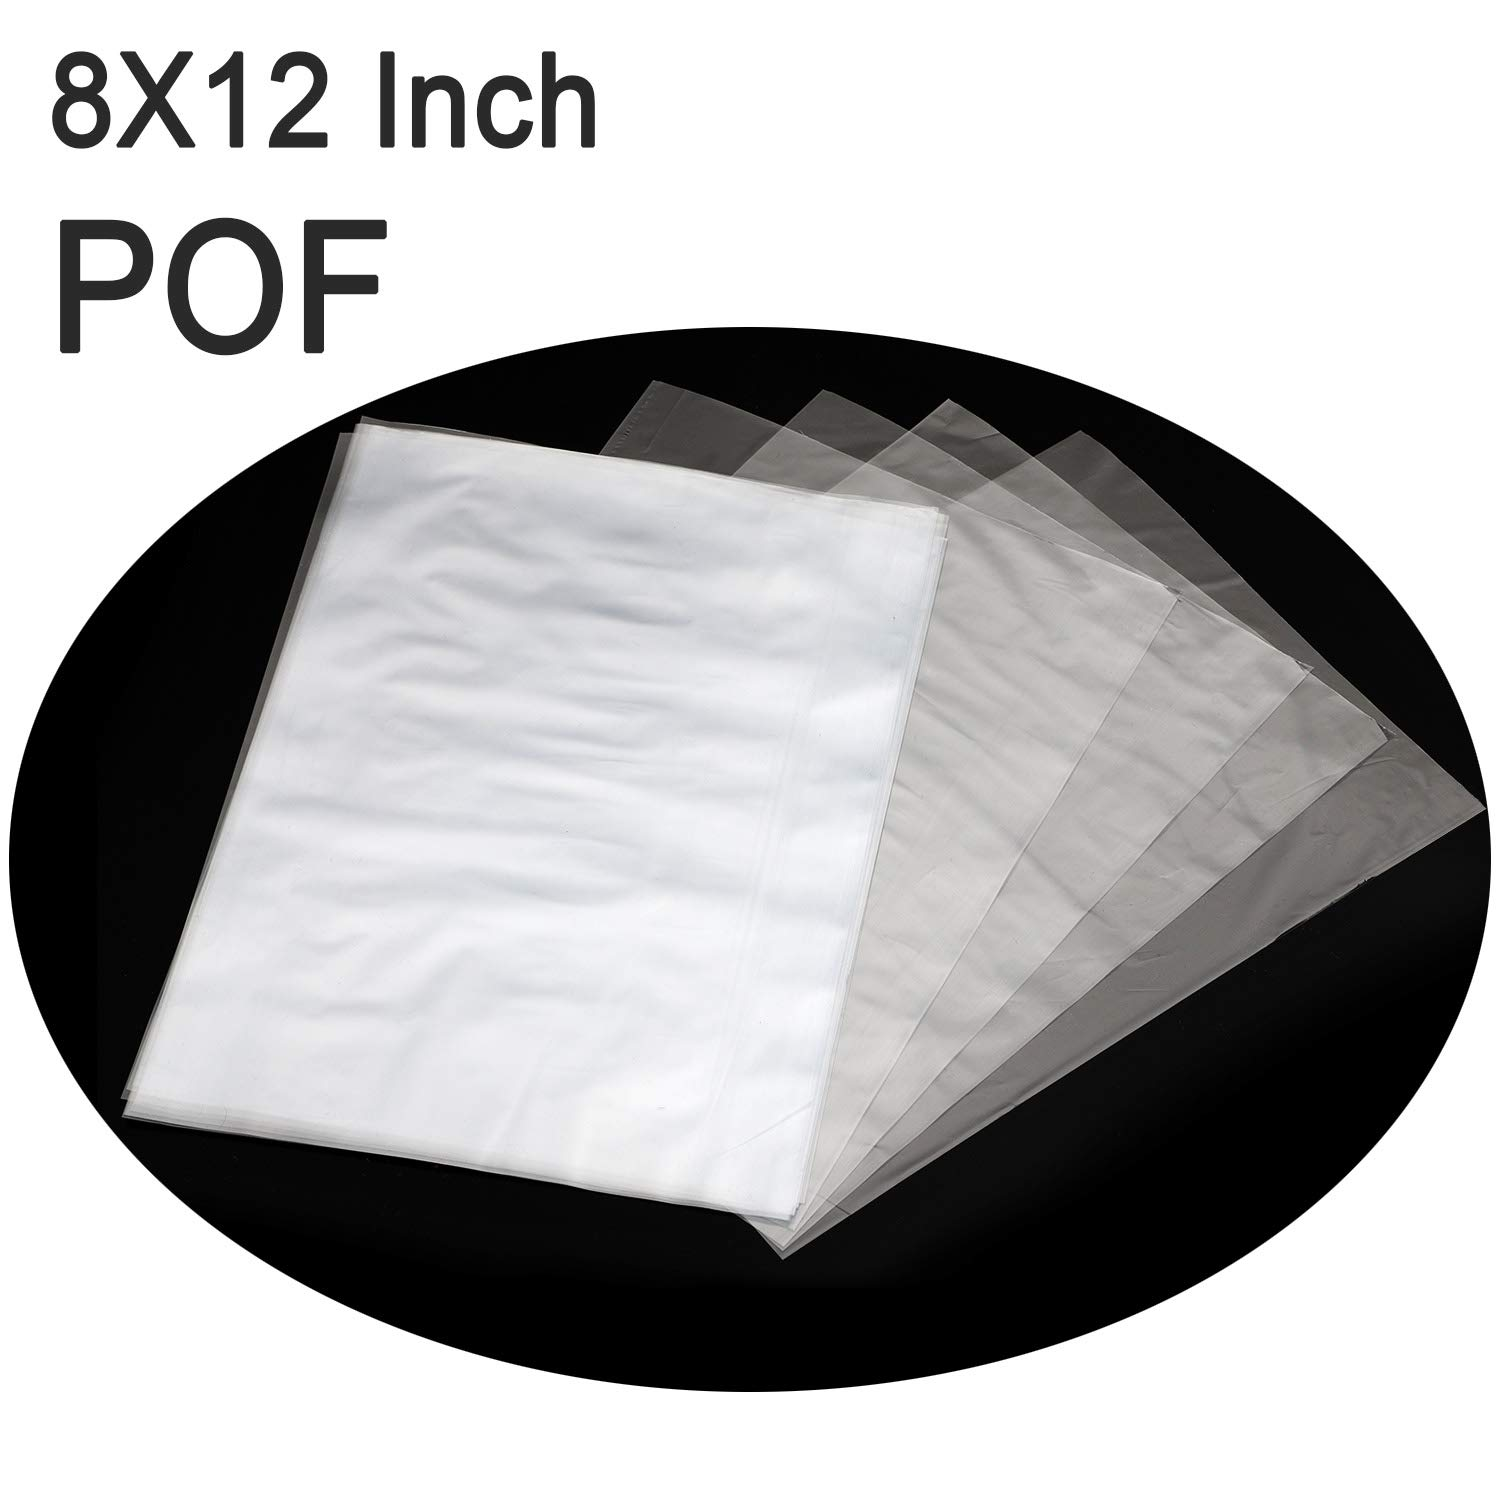 COQOFA POF Heat Shrink Wrap Bags 8X12 inch 200 pcs Clear Non Toxic No Smell Soft Environmental Friendly DIY and Industrial Packaging Plastic Sealer Film with Tiny Air Vent Holes Thicker 120 Gauge